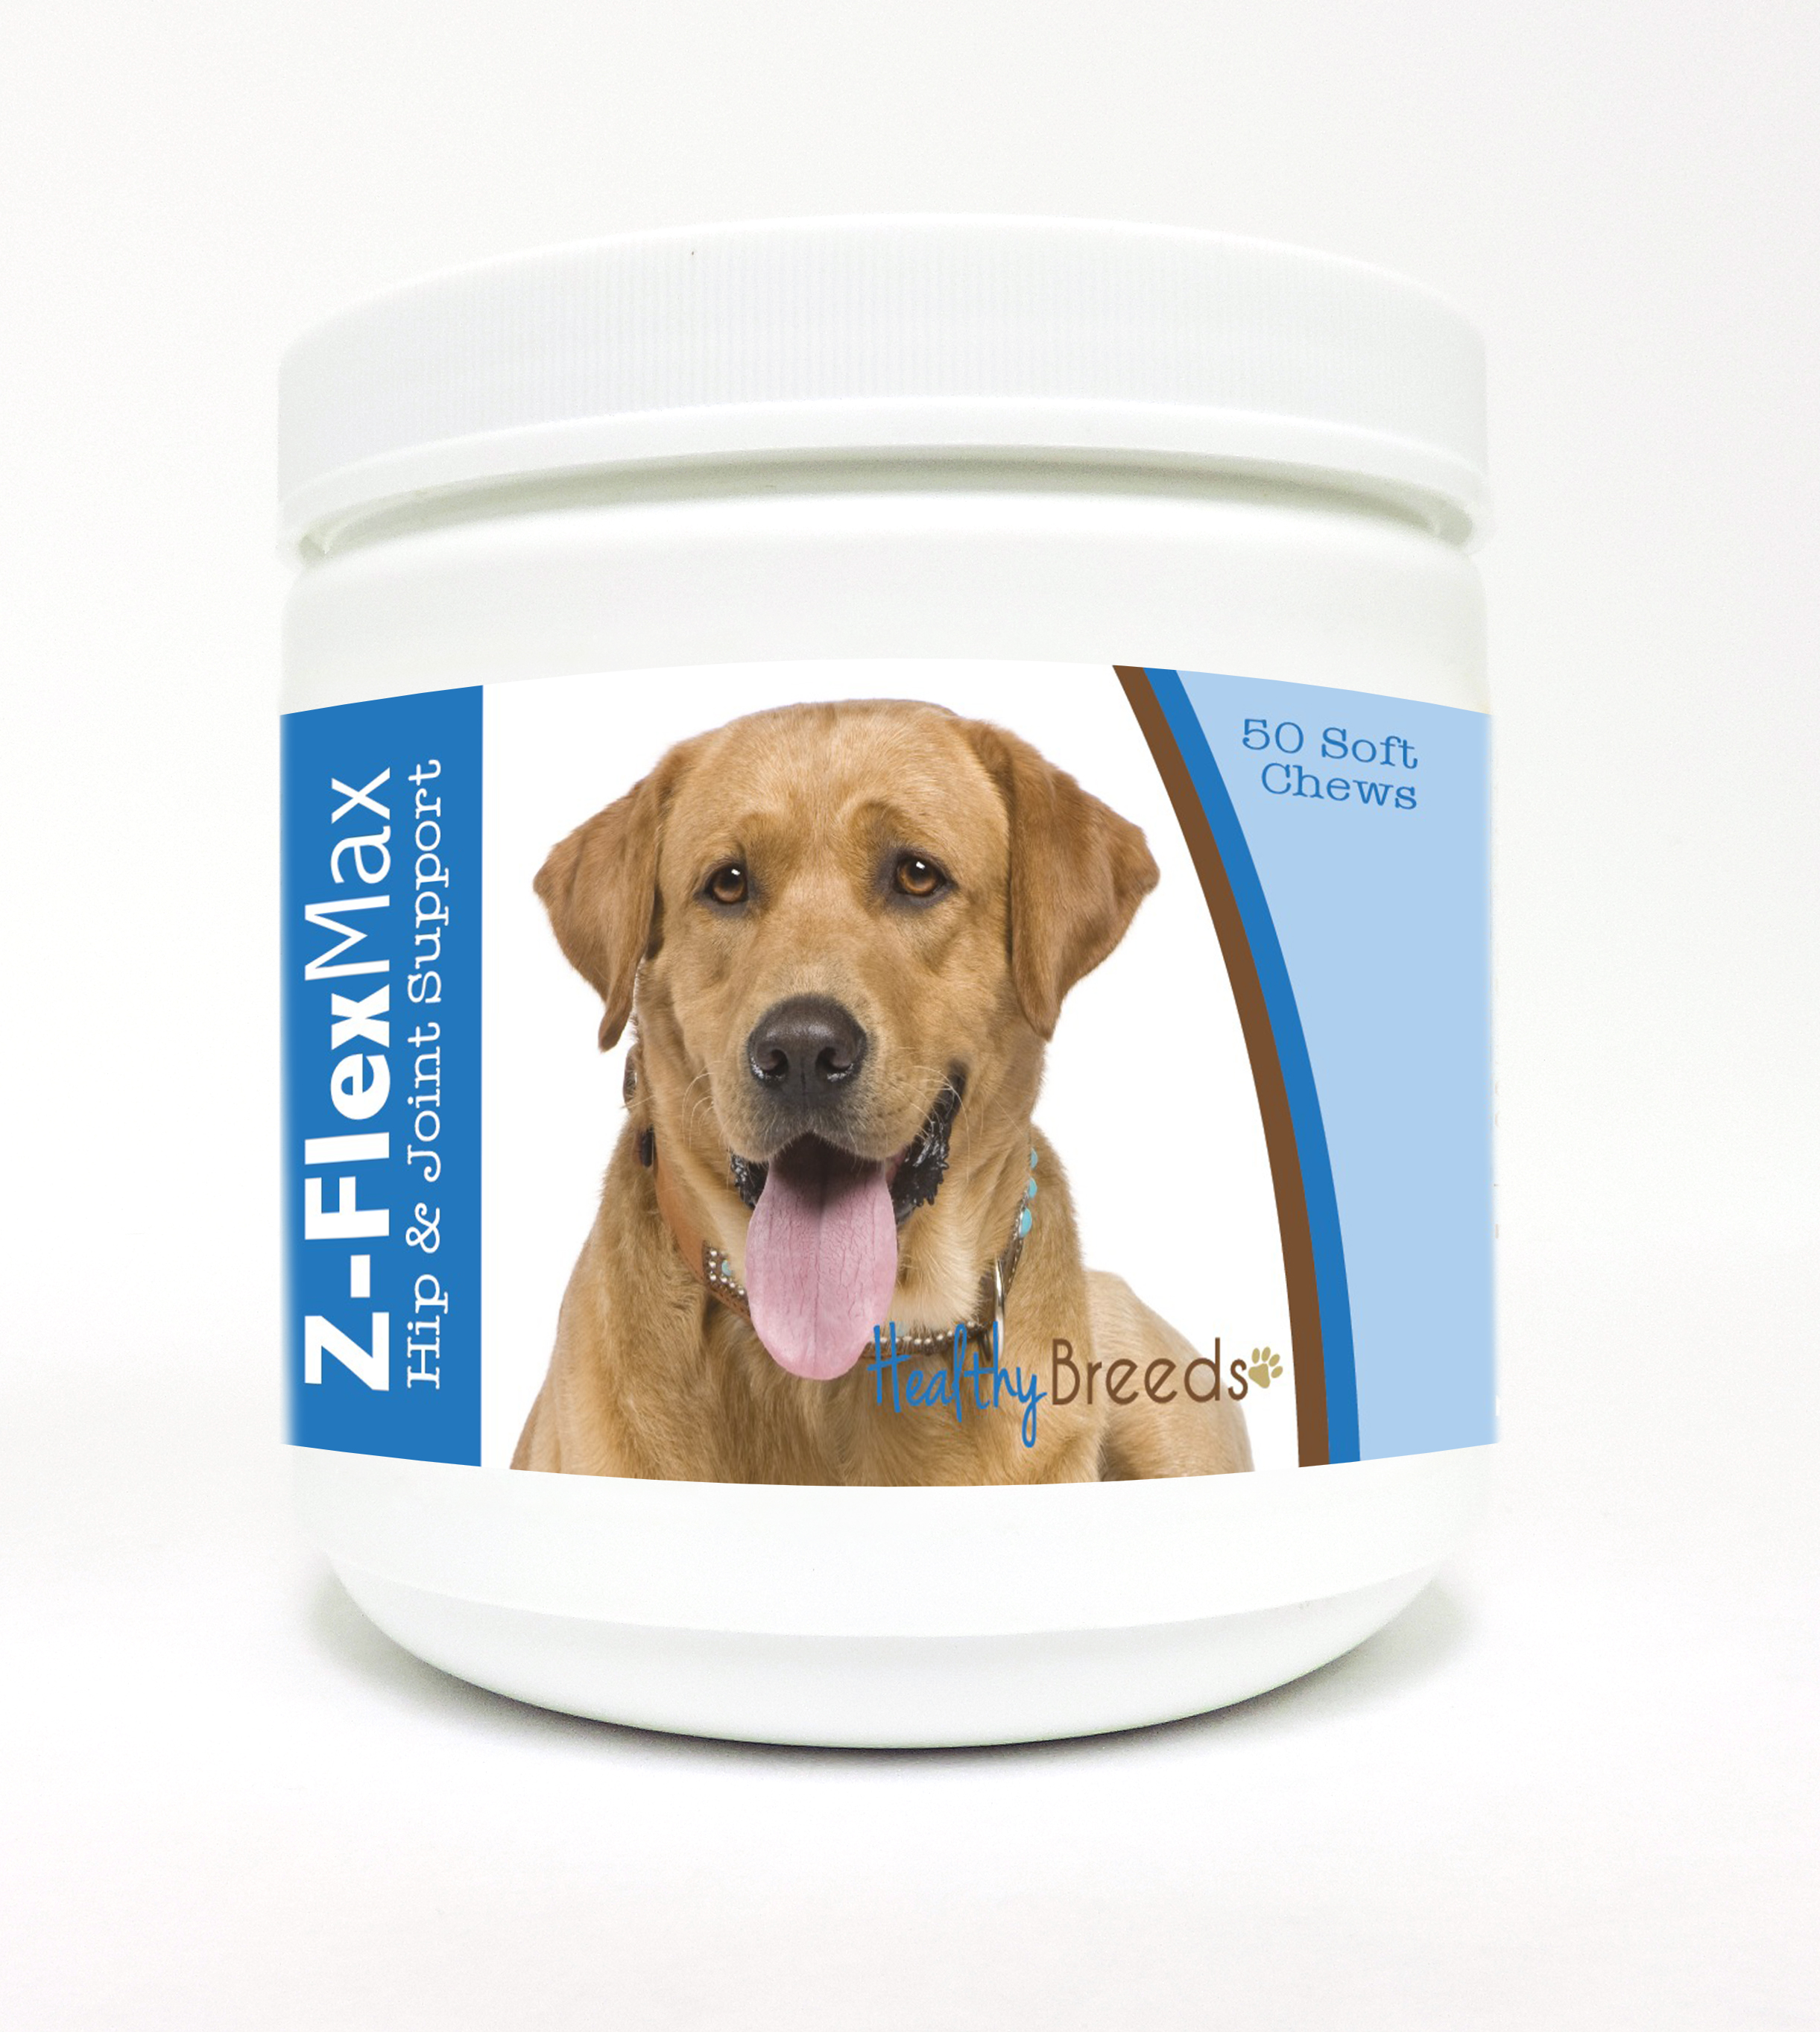 Healthy Breeds Labrador Retriever Z-Flex Max Dog Hip & Joint Support Soft Chews 50 Count